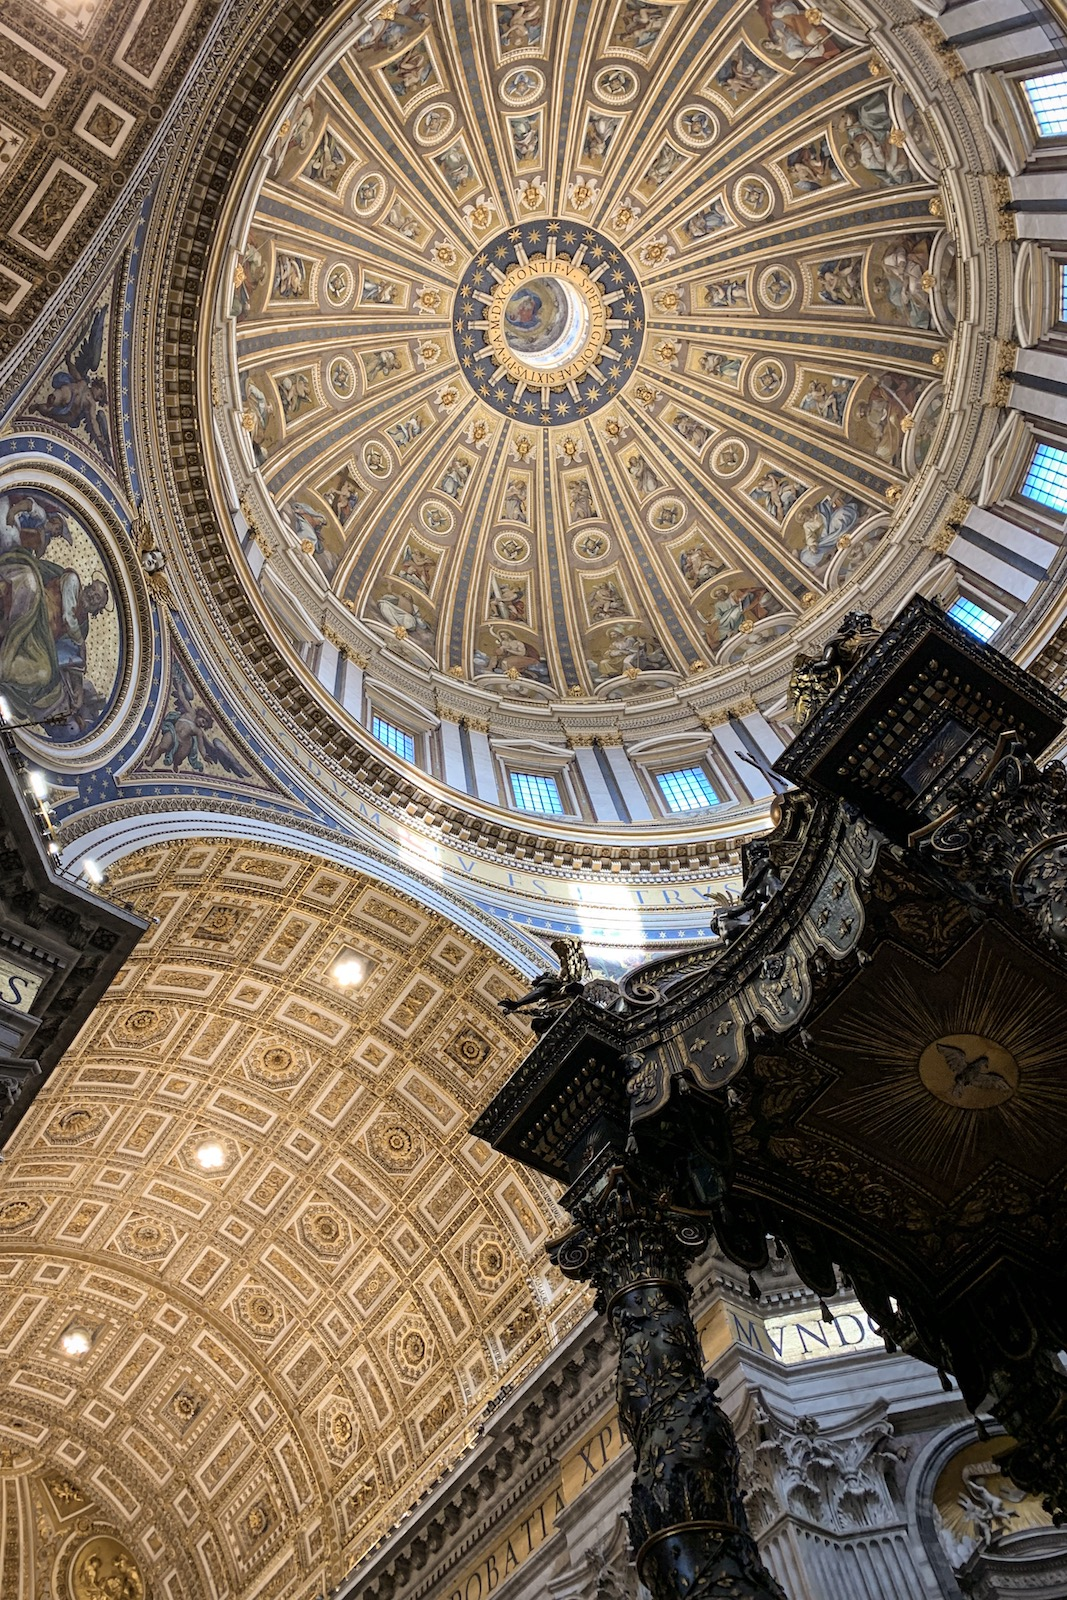 Ceiling of Saint Peter's Basilica, Vatican City